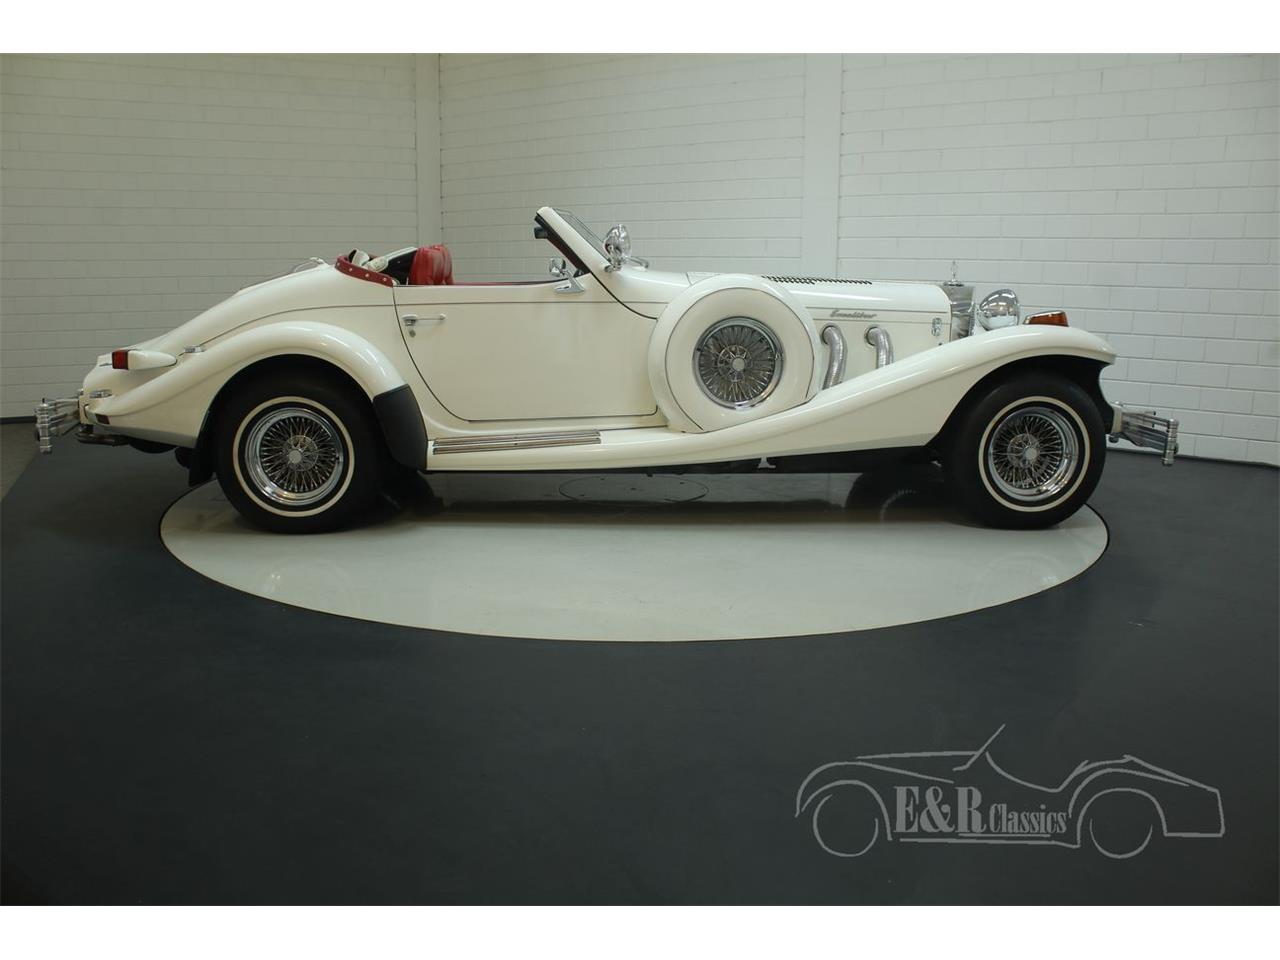 Large Picture of '82 Excalibur Series IV Phaeton located in Waalwijk noord brabant - $78,450.00 Offered by E & R Classics - Q3GF